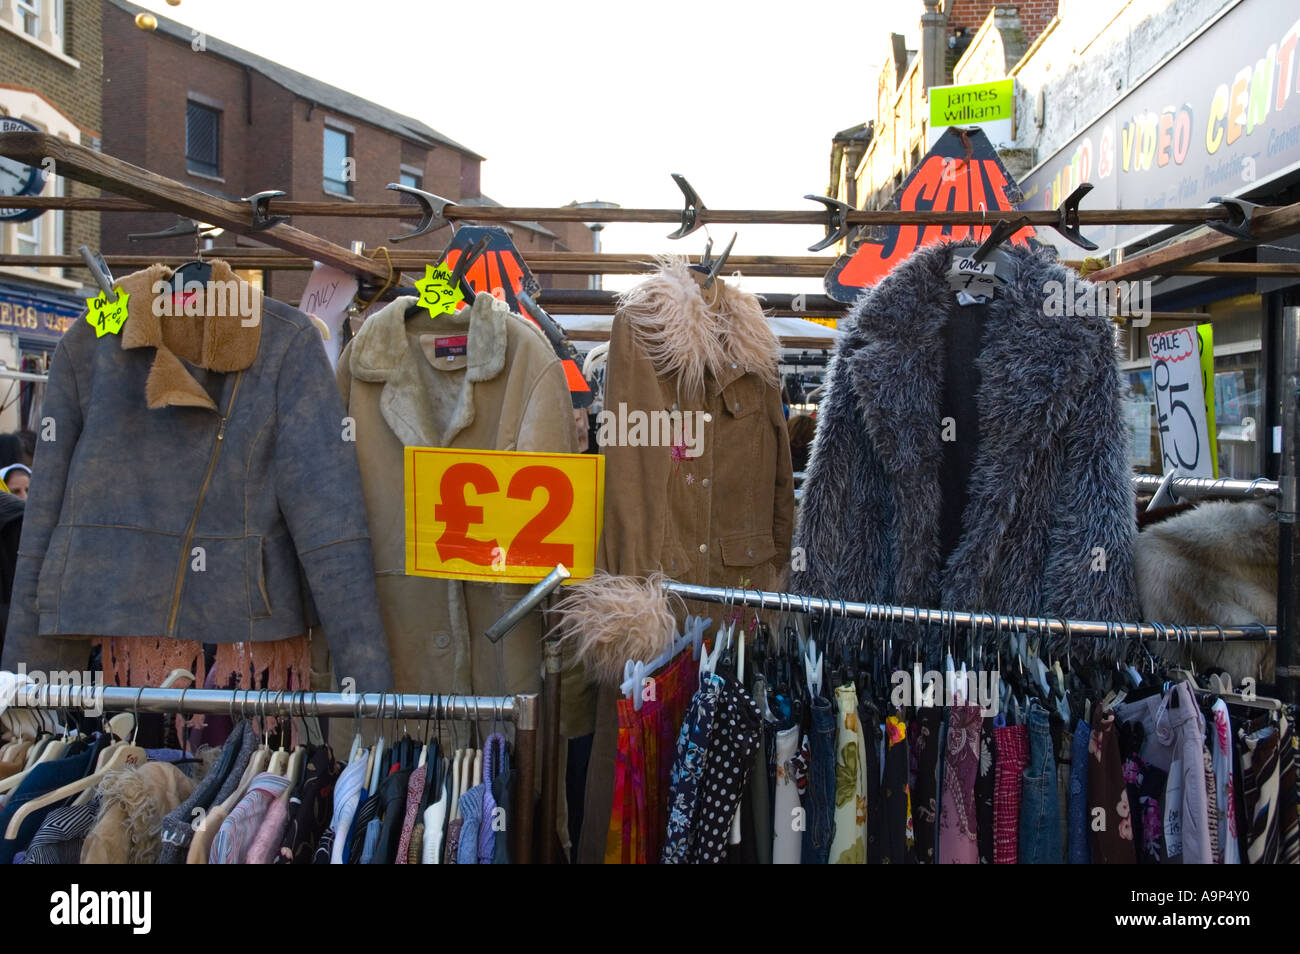 Cheap Clothing At Walthamstow Market In East London Capital Of